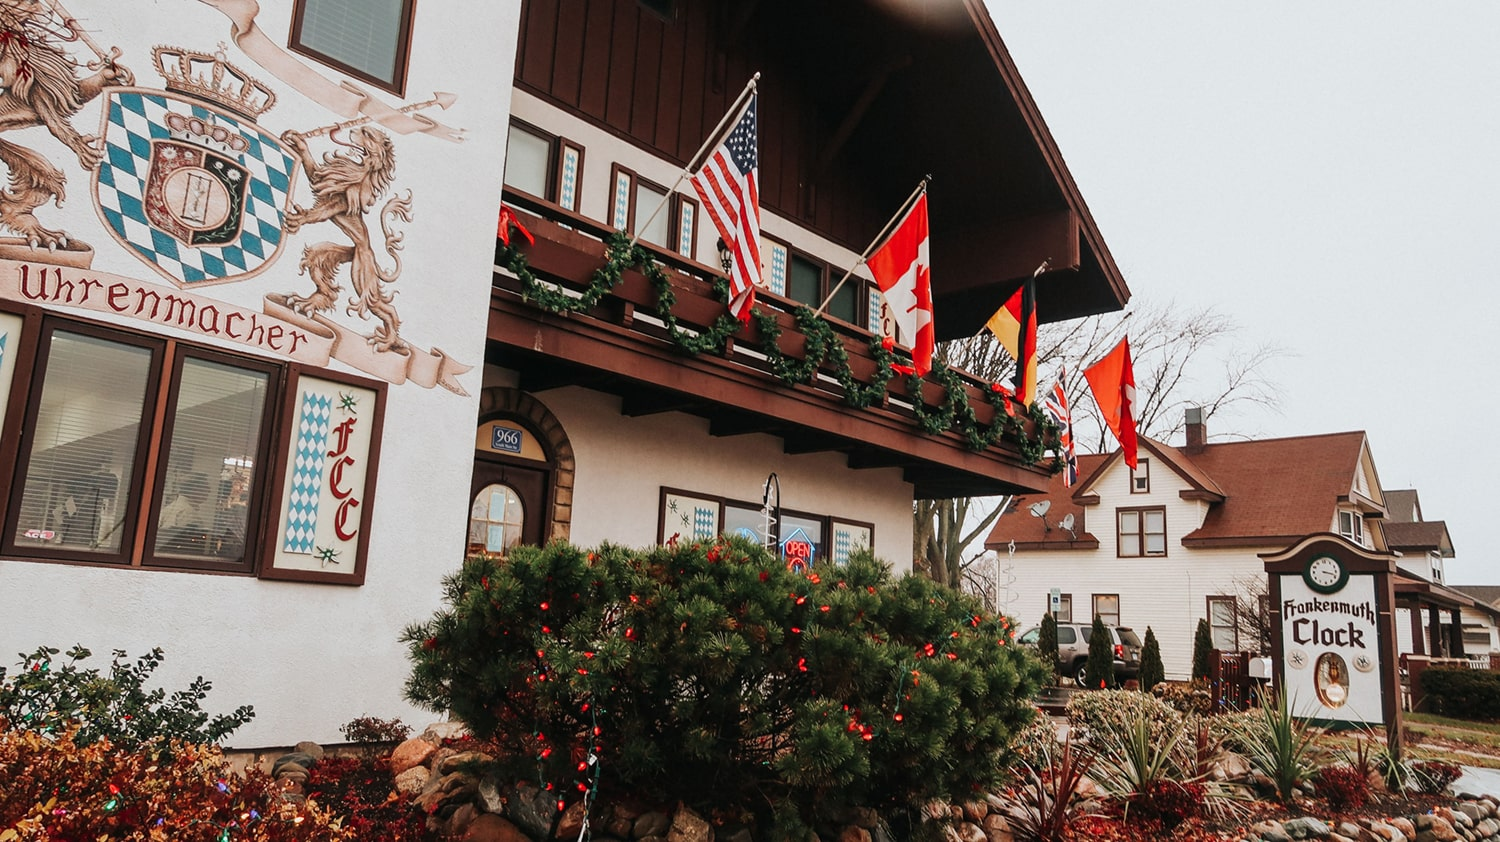 Frankenmuth, MI - A Real Hallmark Christmas Movie Town | It's Megan | #frankenmuth #bavaria #hallmark #christmas #michigan